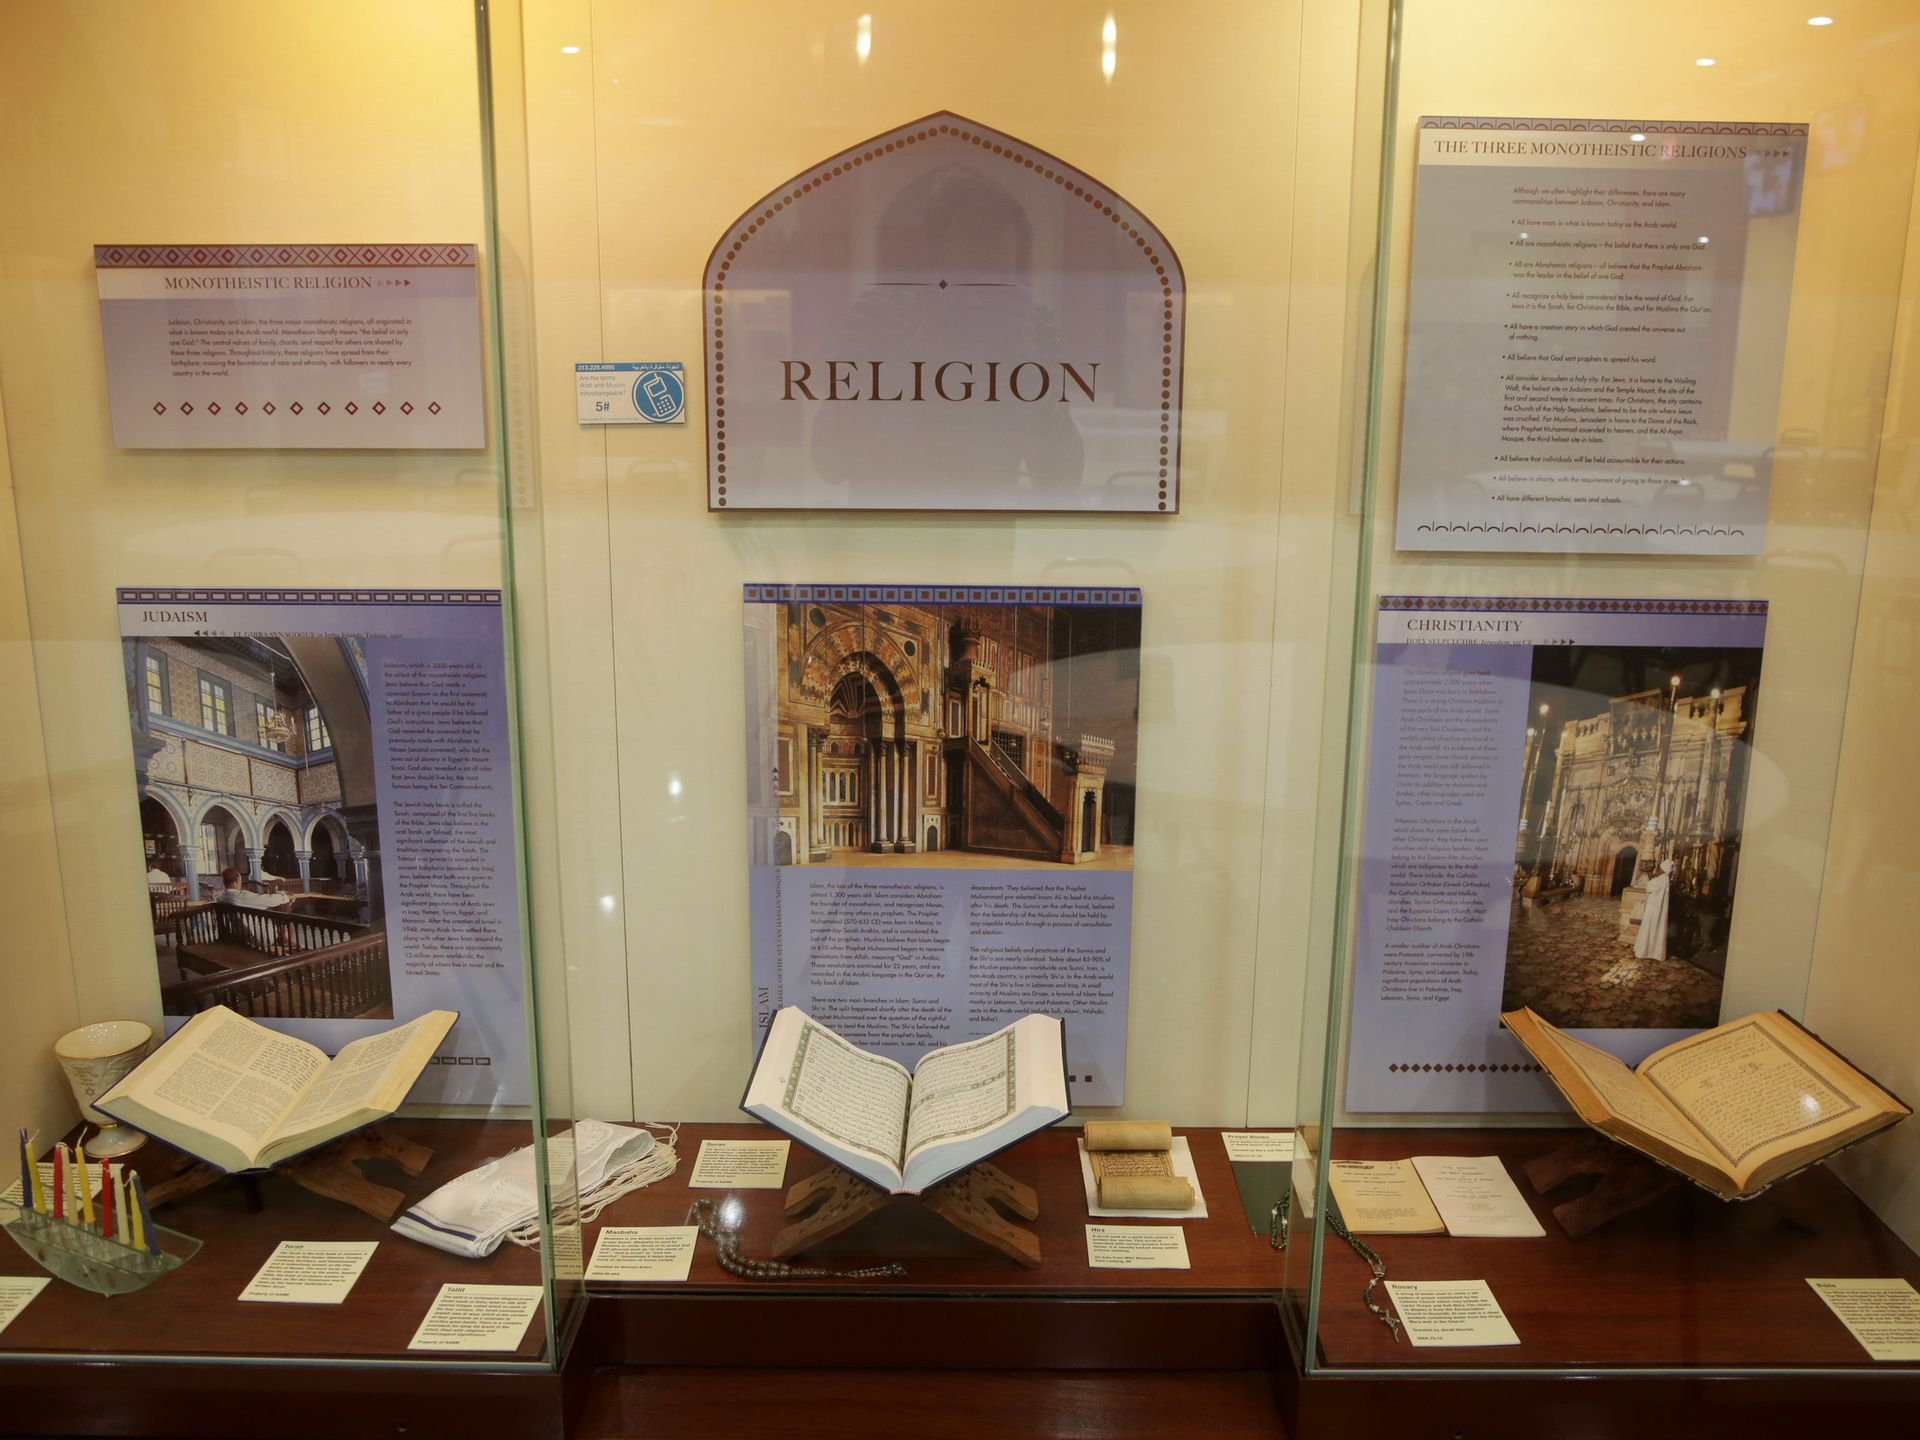 Exhibits on Arab heritage